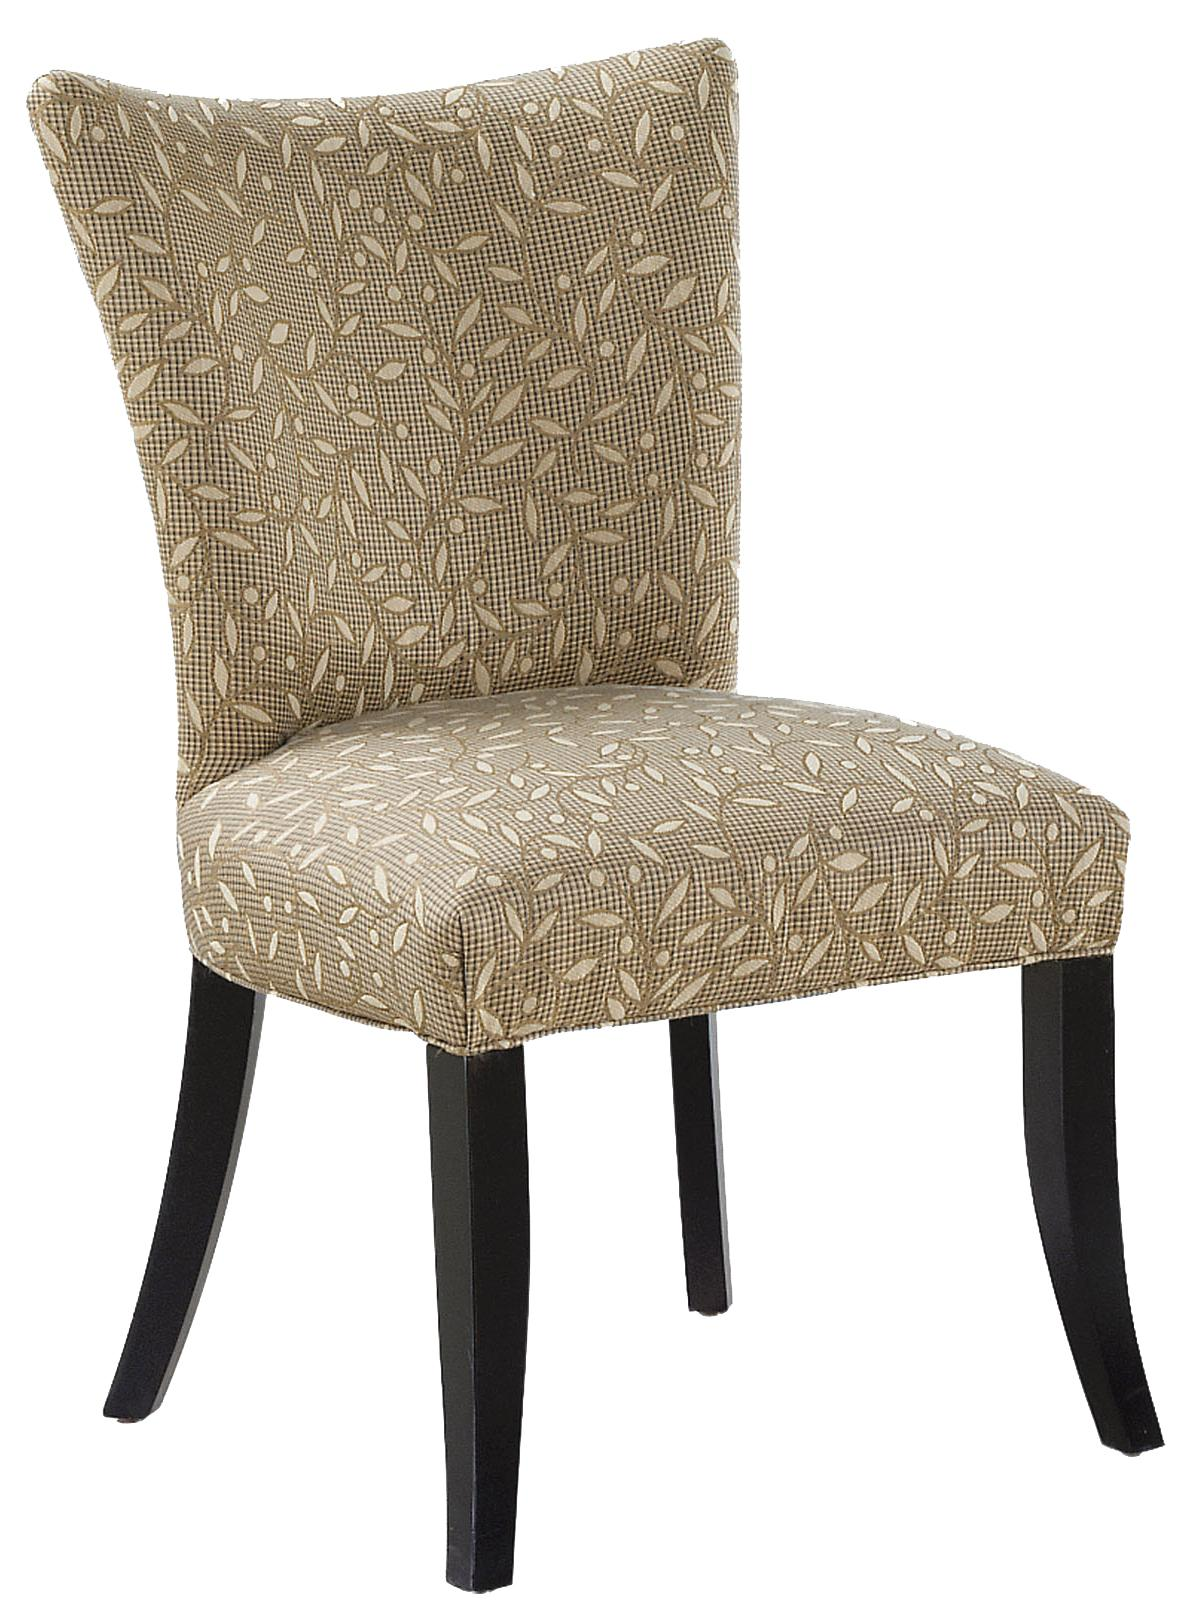 Fairfield Chairs Contemporary Side Chair - Item Number: 6069-05